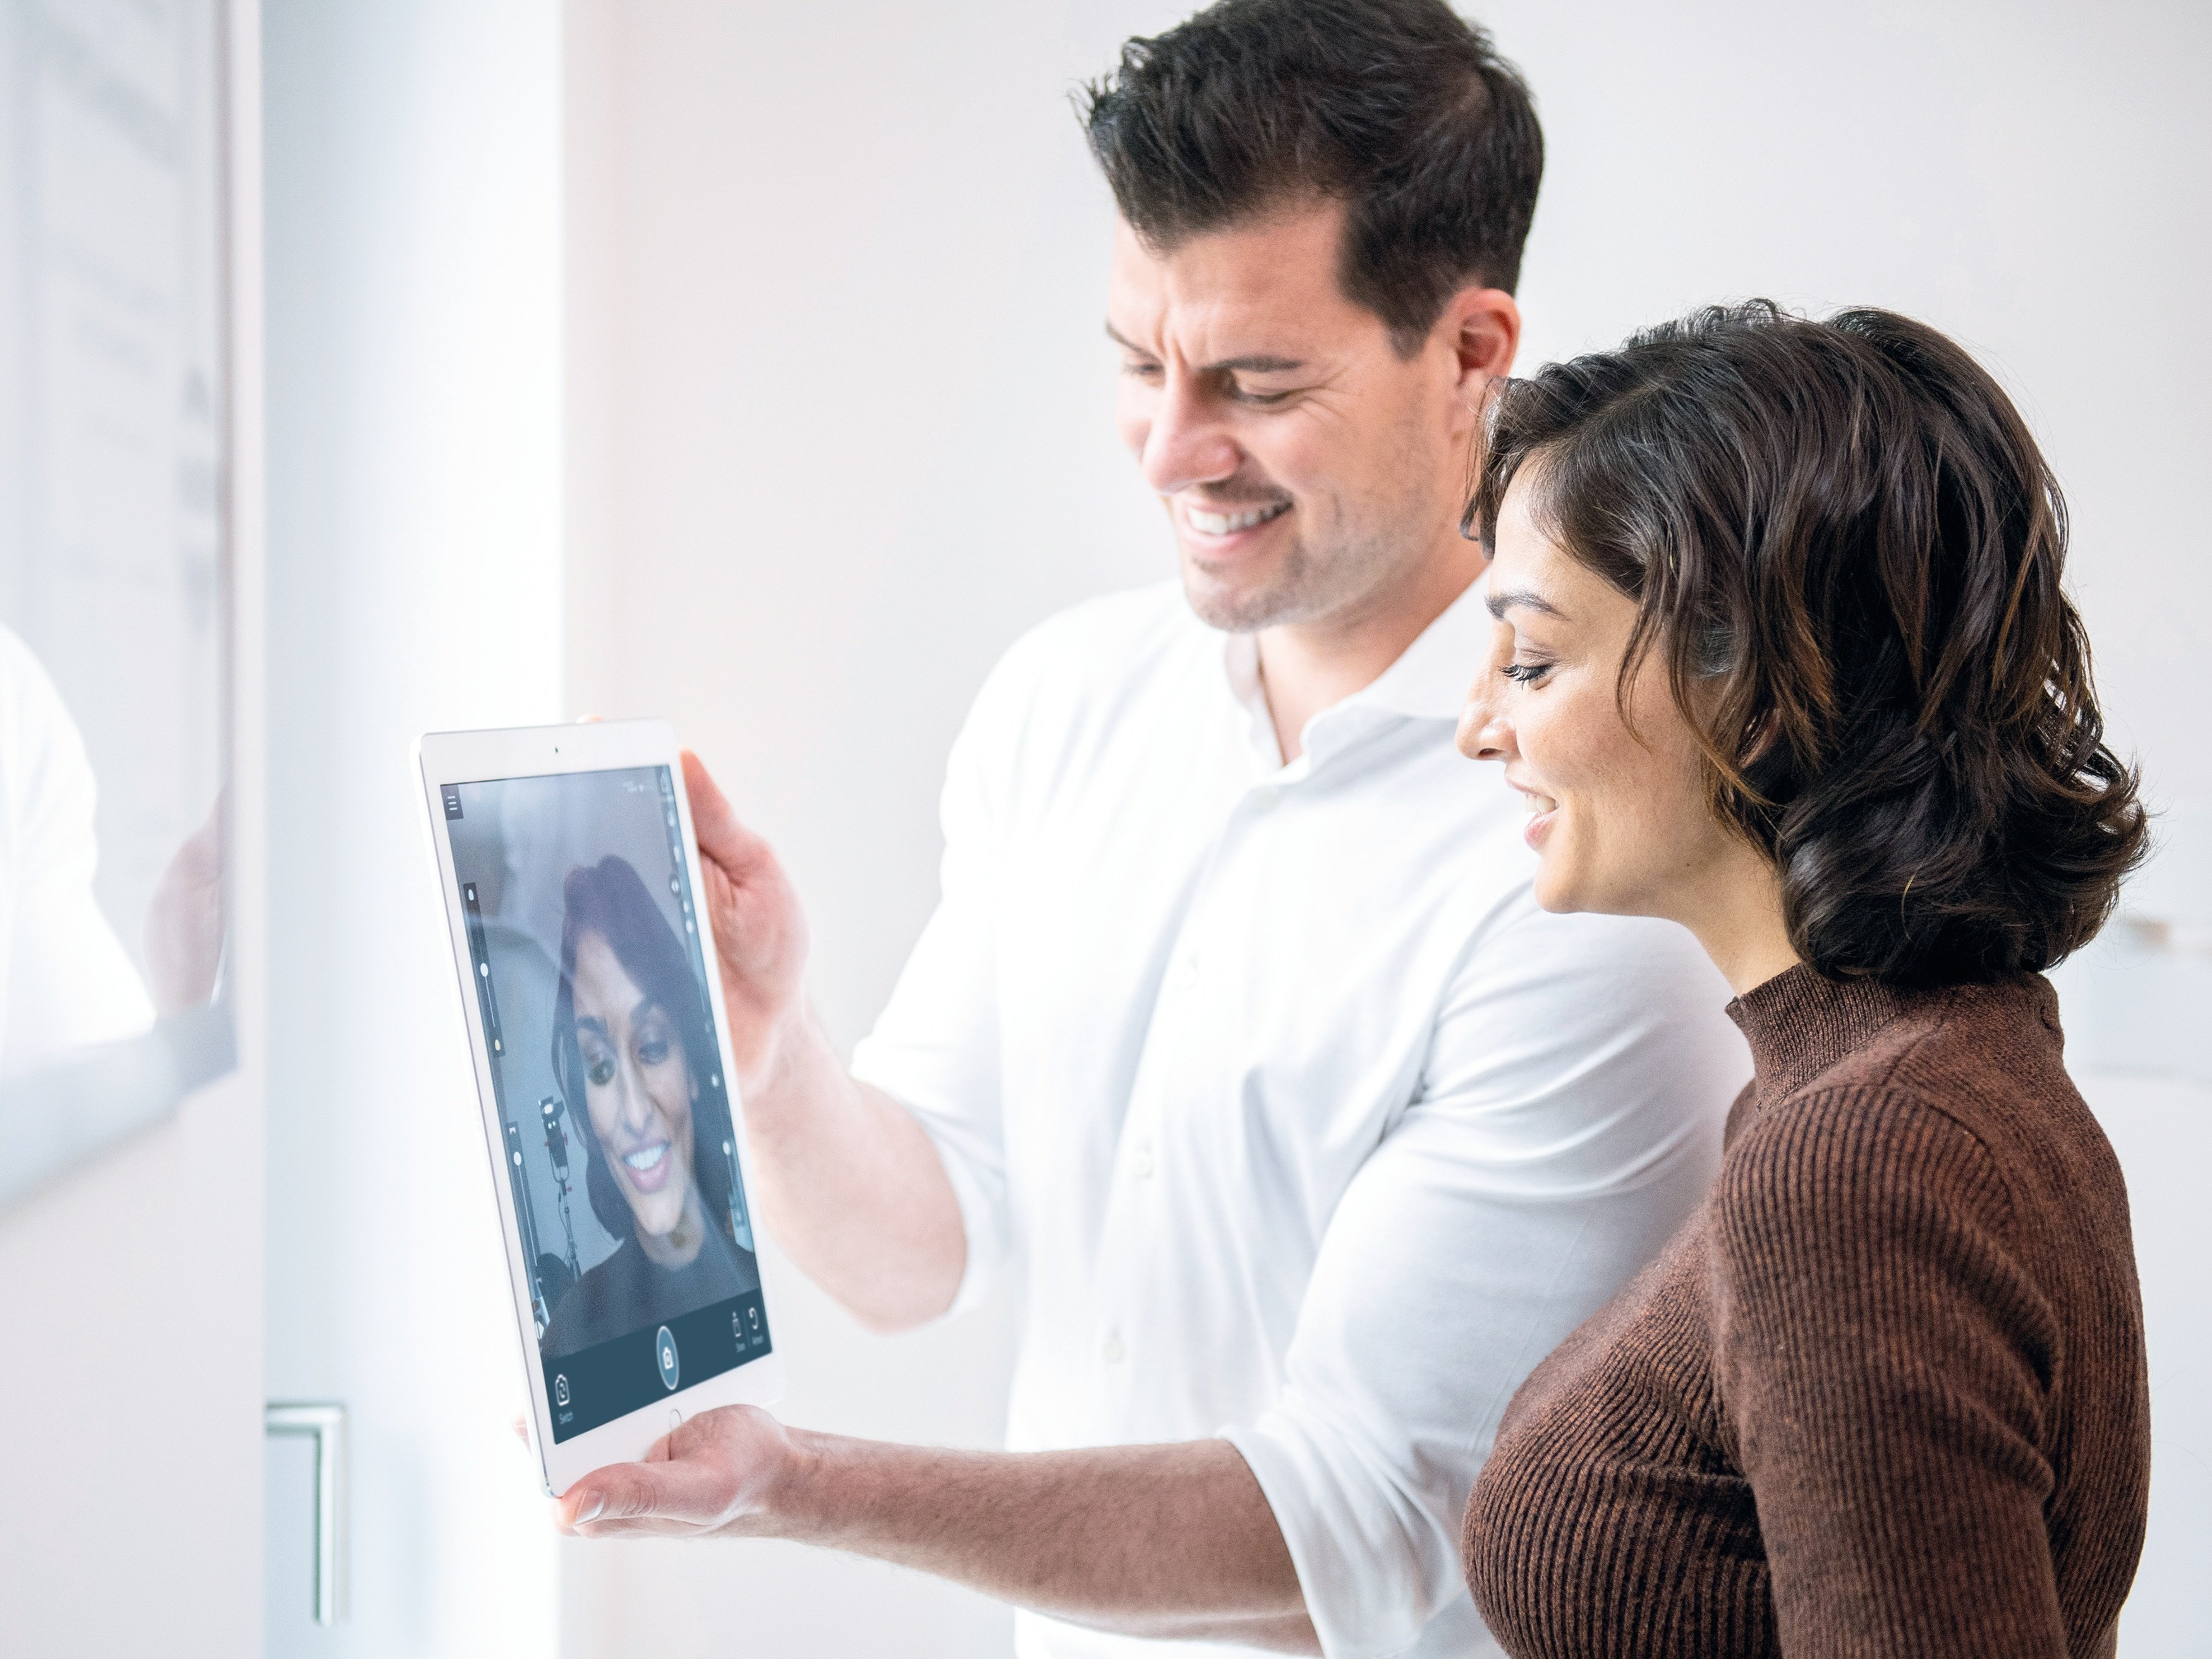 IvoSmile App helps dentists and labs to envision a patient's new smile together